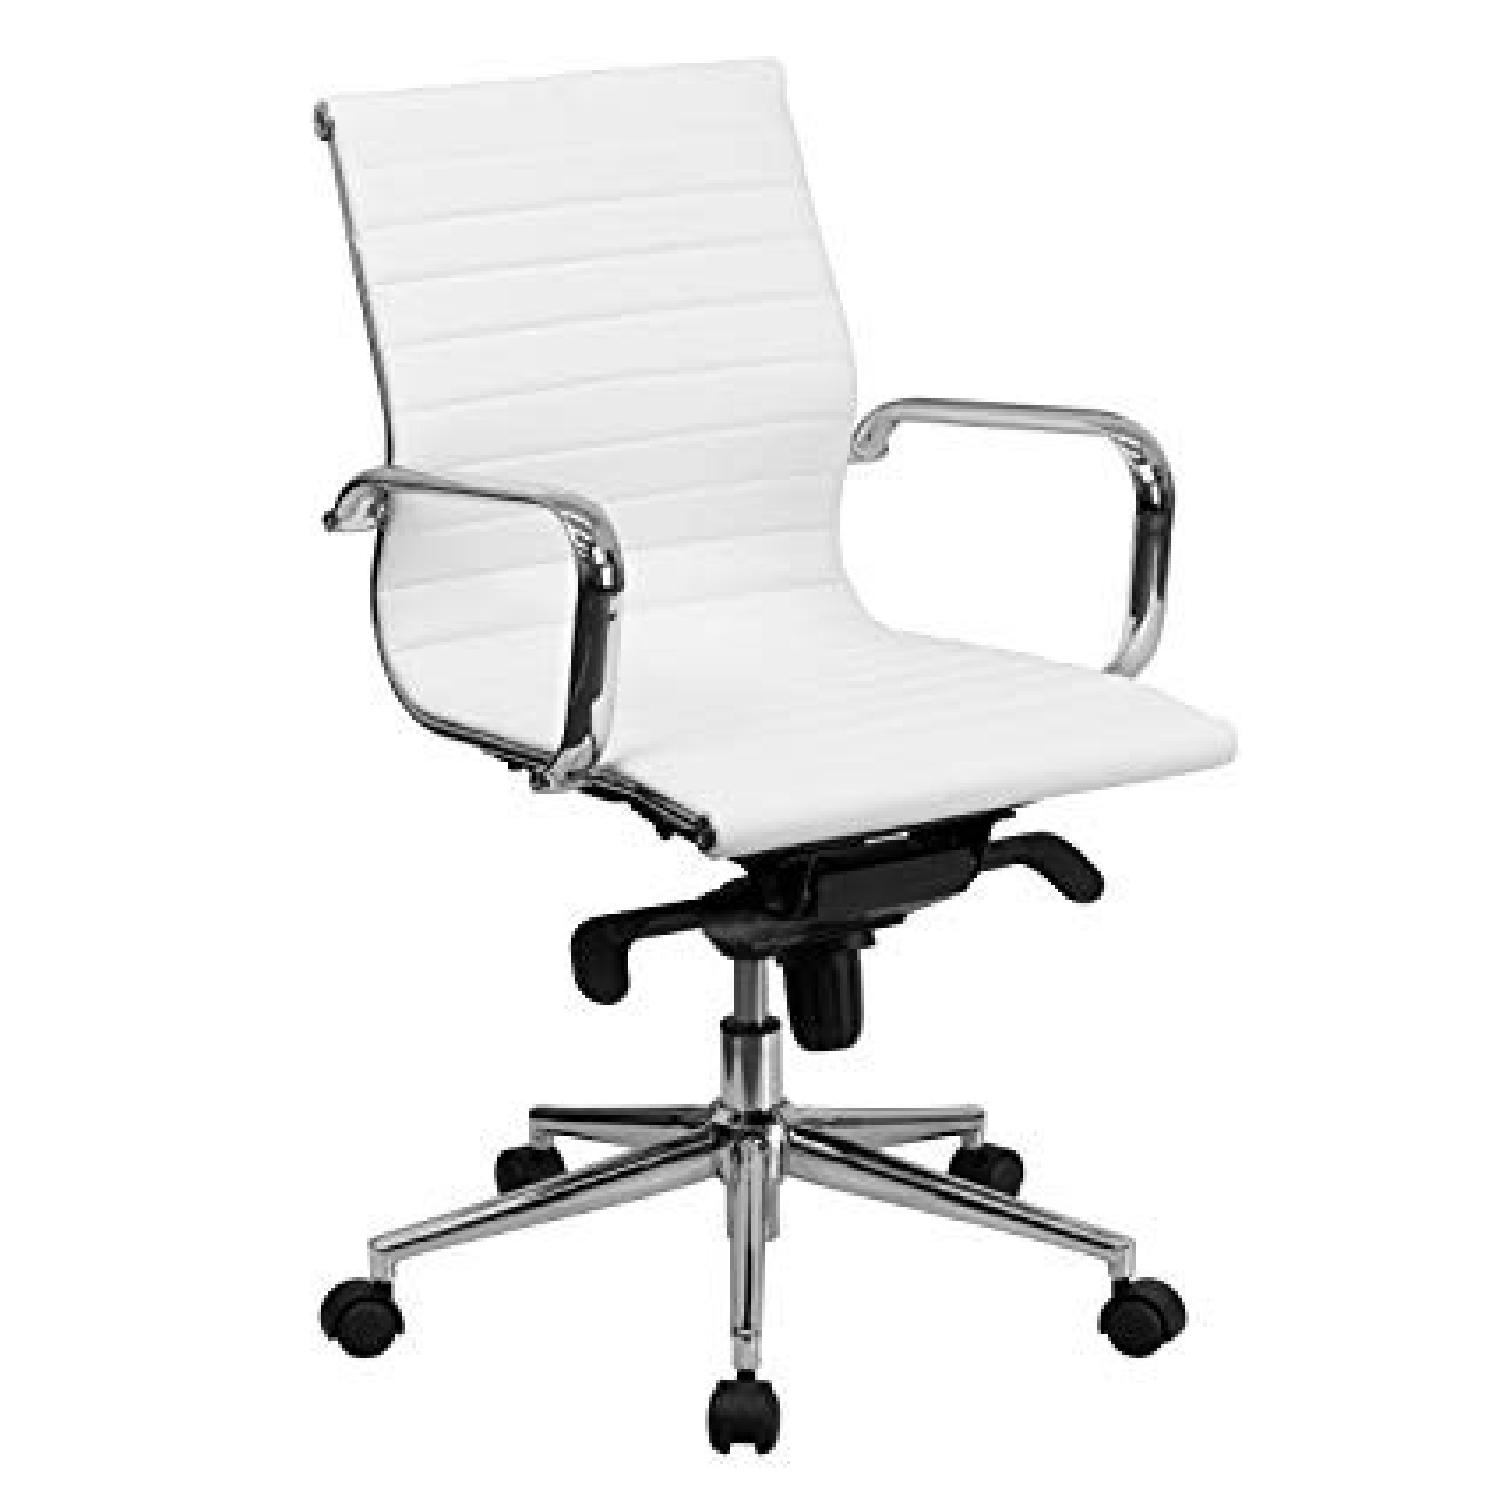 Medium Back Office Chair in White